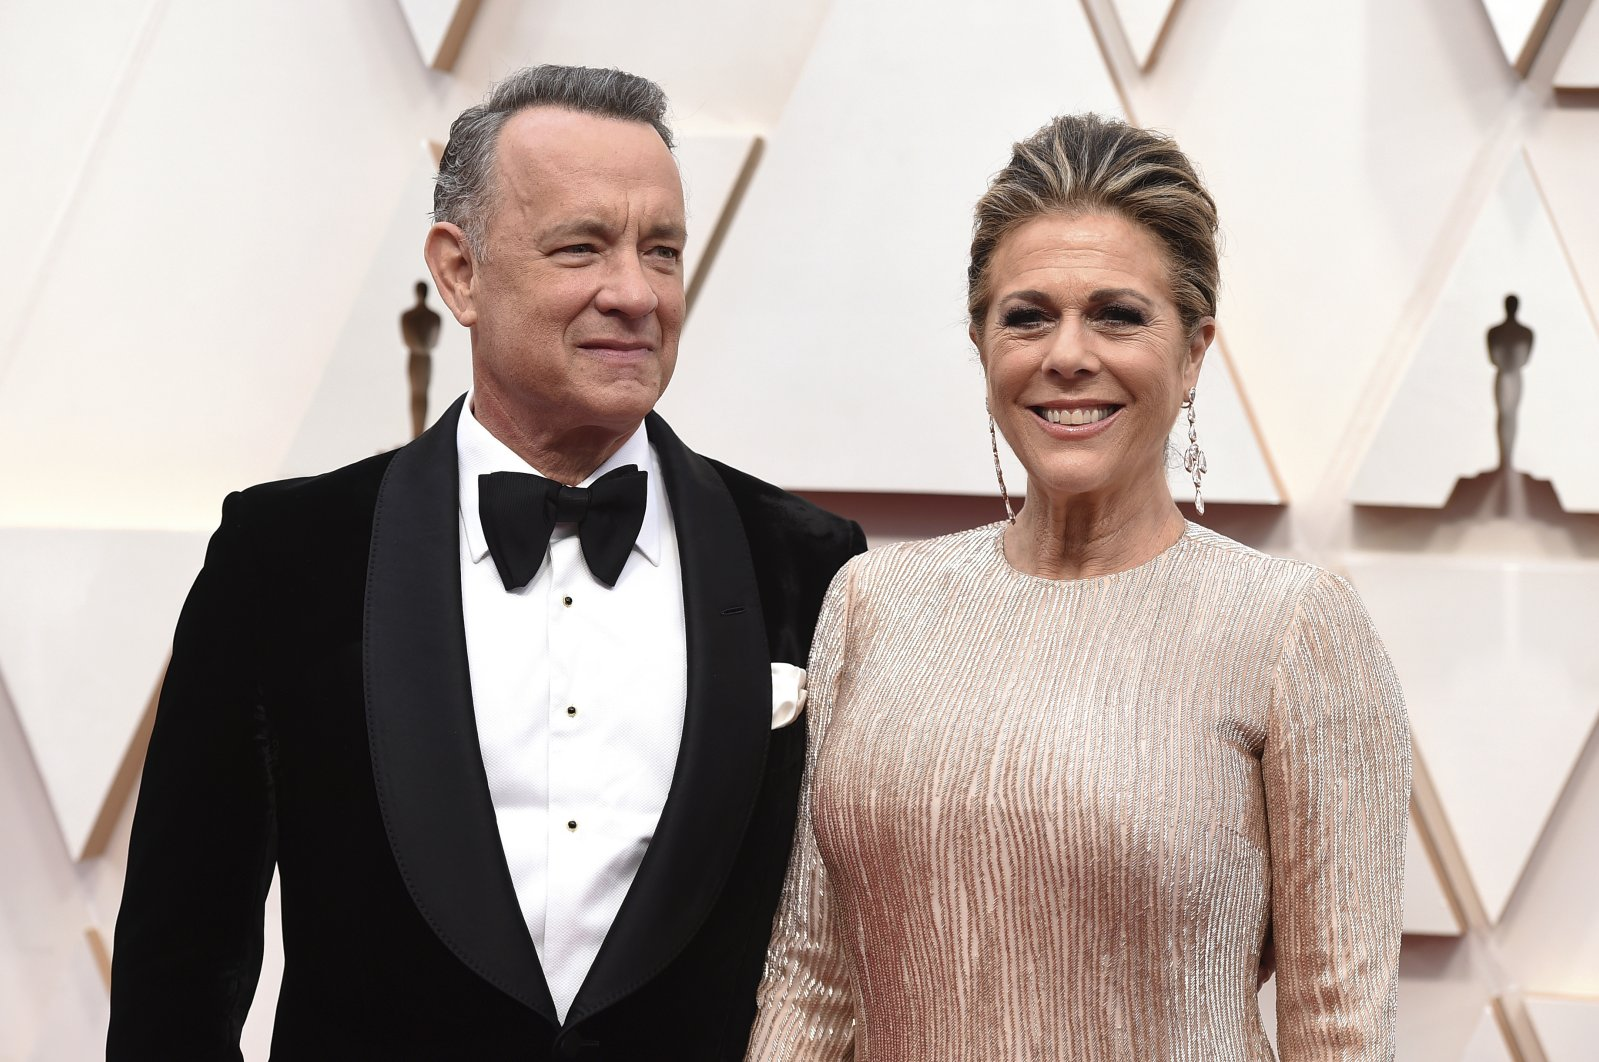 """Tom Hanks, left, and Rita Wilson arrive at the Oscars at the Dolby Theatre in Los Angeles. The couple have tested positive for the coronavirus, the actor said in a statement Wednesday, March 11. The 63-year-old actor said they will be """"tested, observed and isolated for as long as public health and safety requires."""" (AP Photo)"""